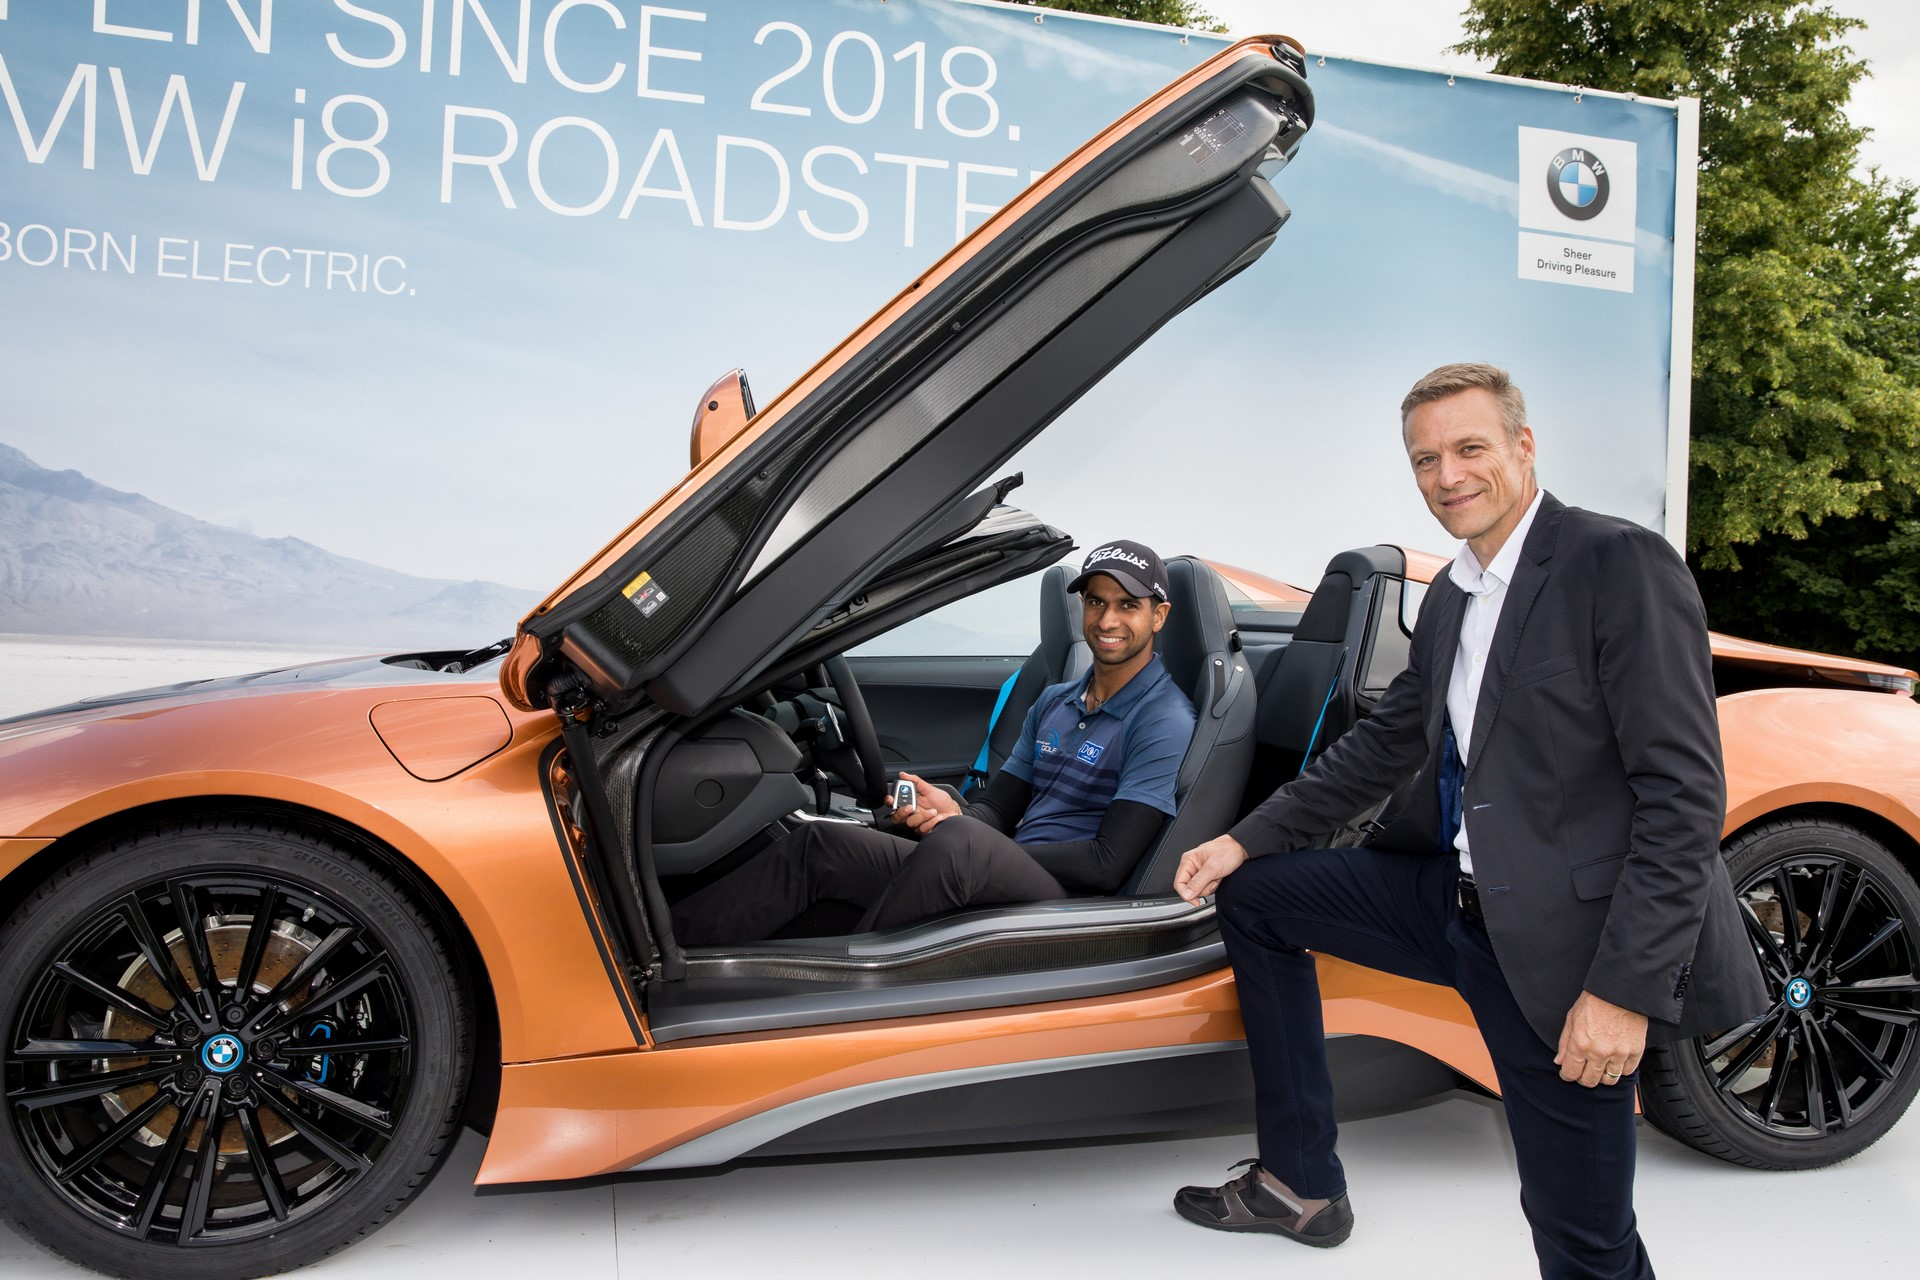 Aaron Rai win BMW i8 Roadster (4)